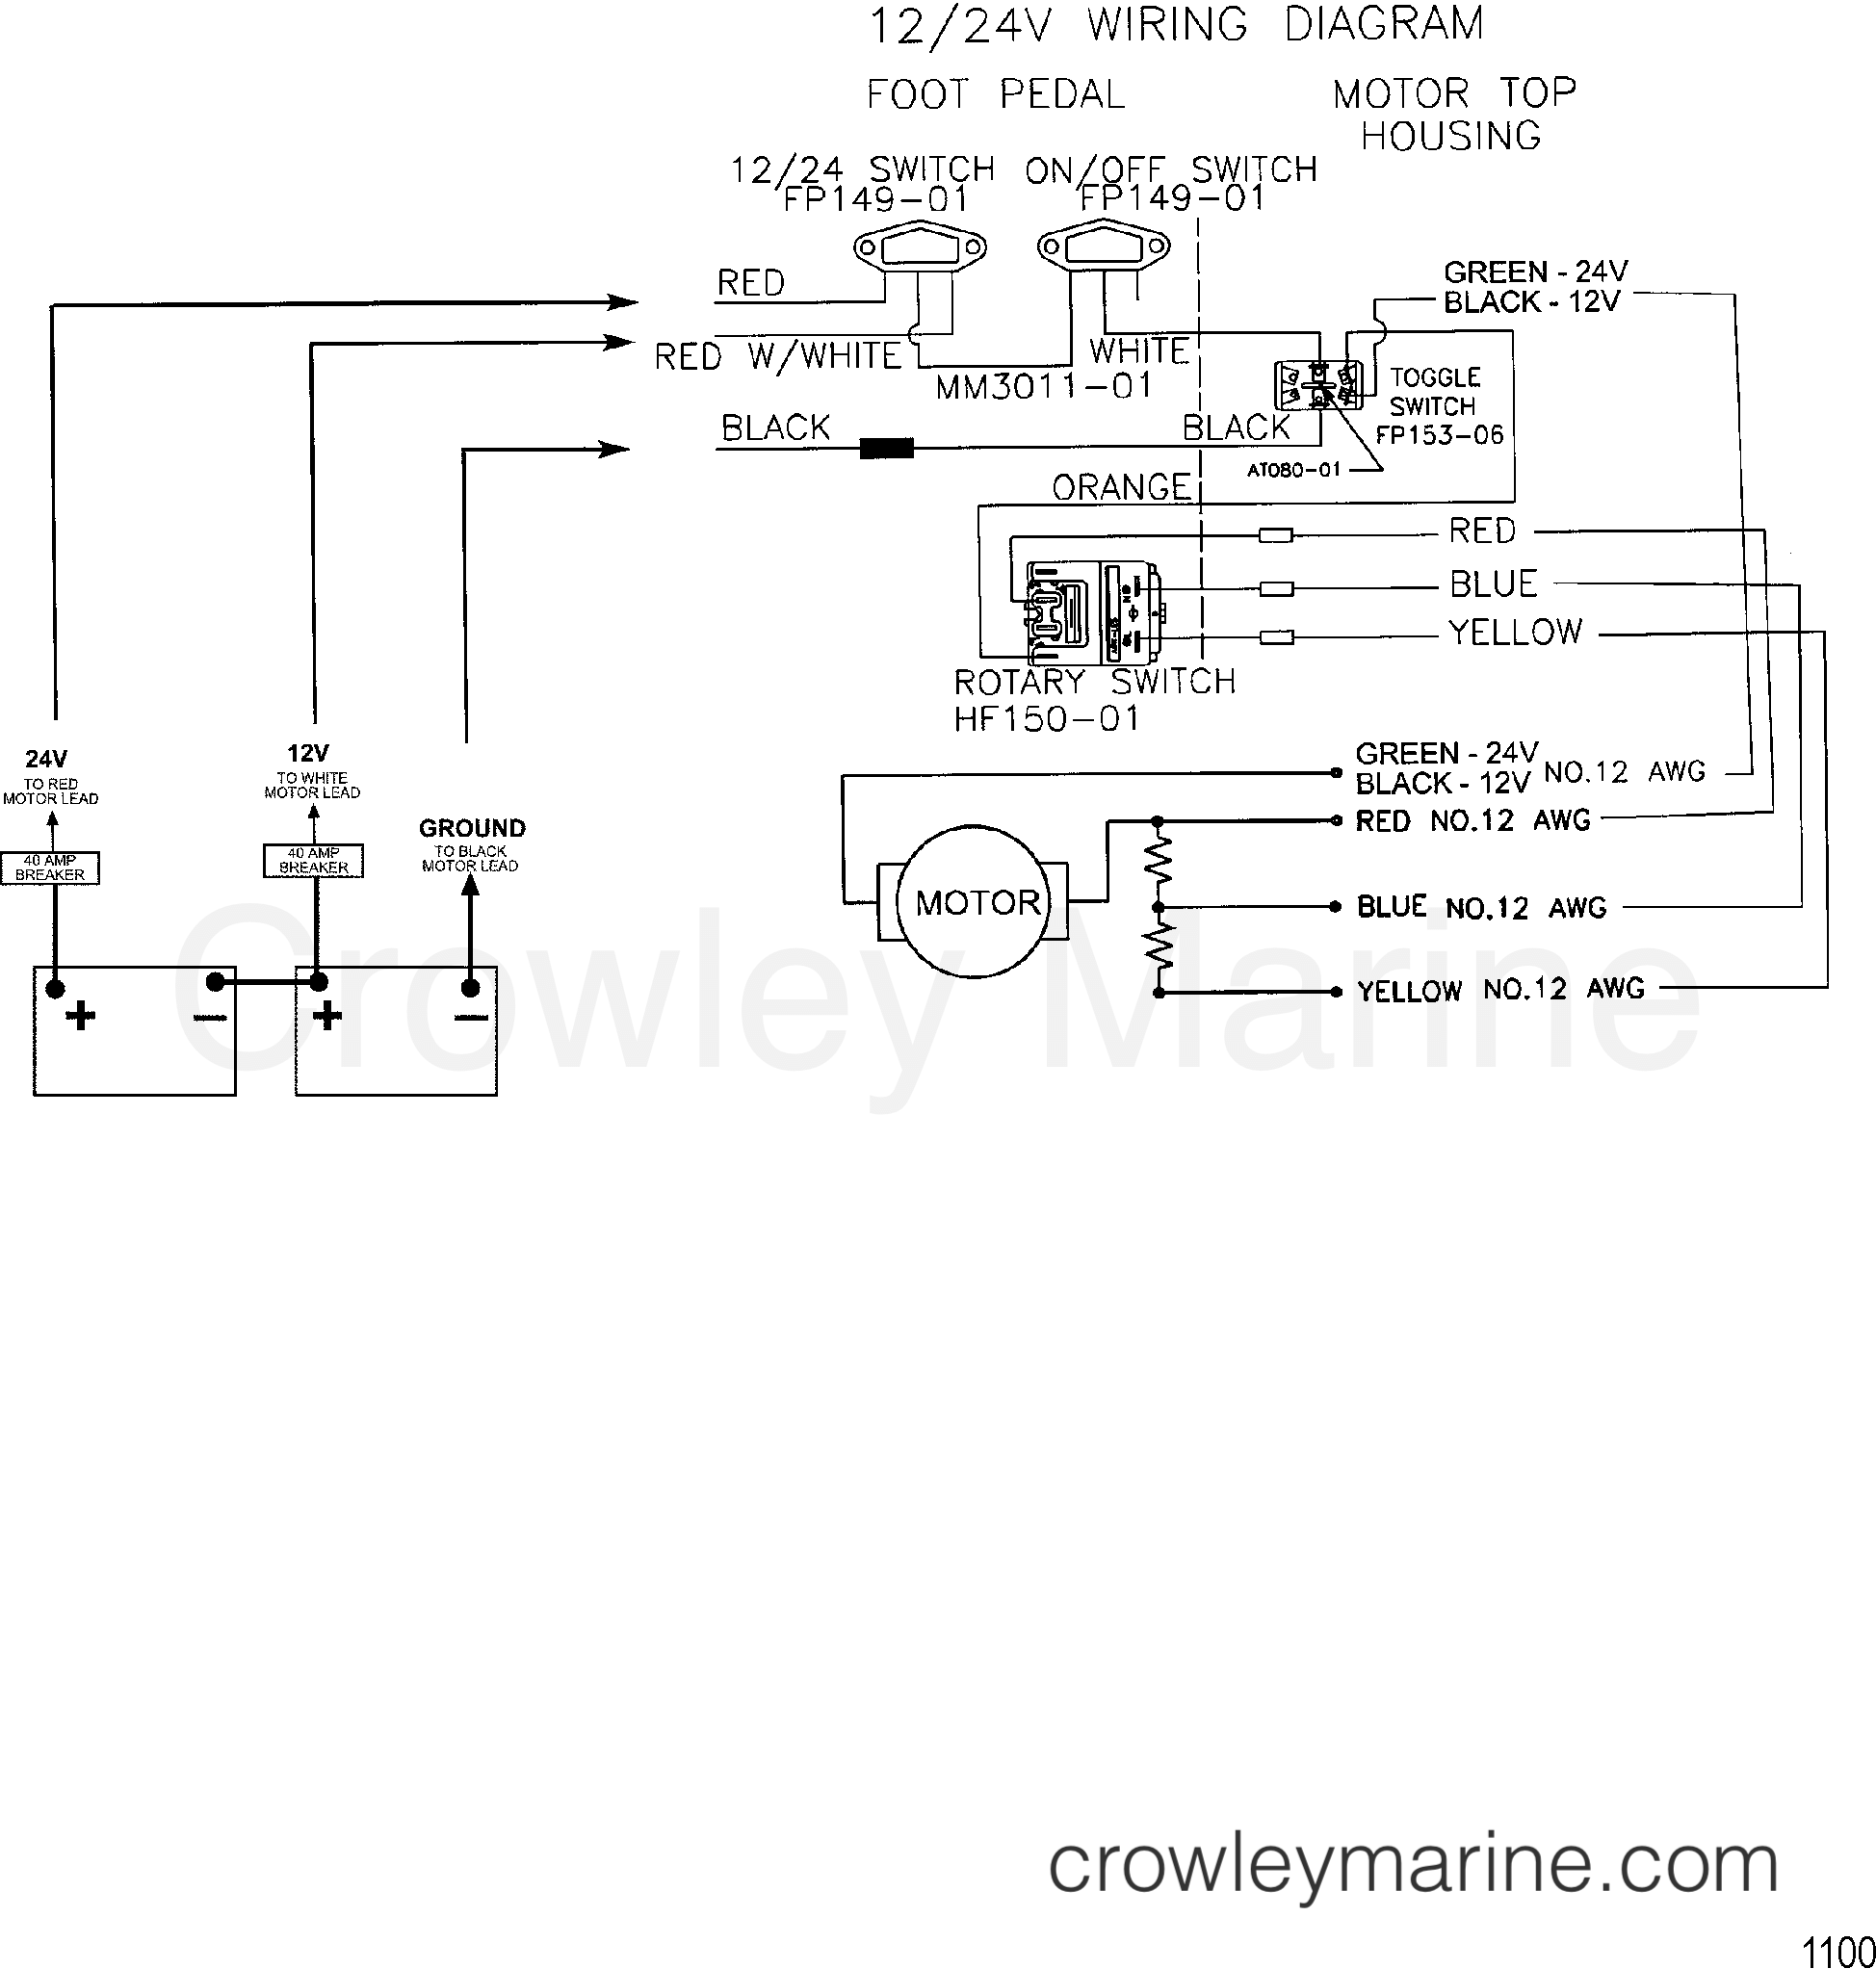 1999 MotorGuide 12/24V [MOTORGUIDE] - 9667B49V1 - WIRE DIAGRAM(MODEL 667